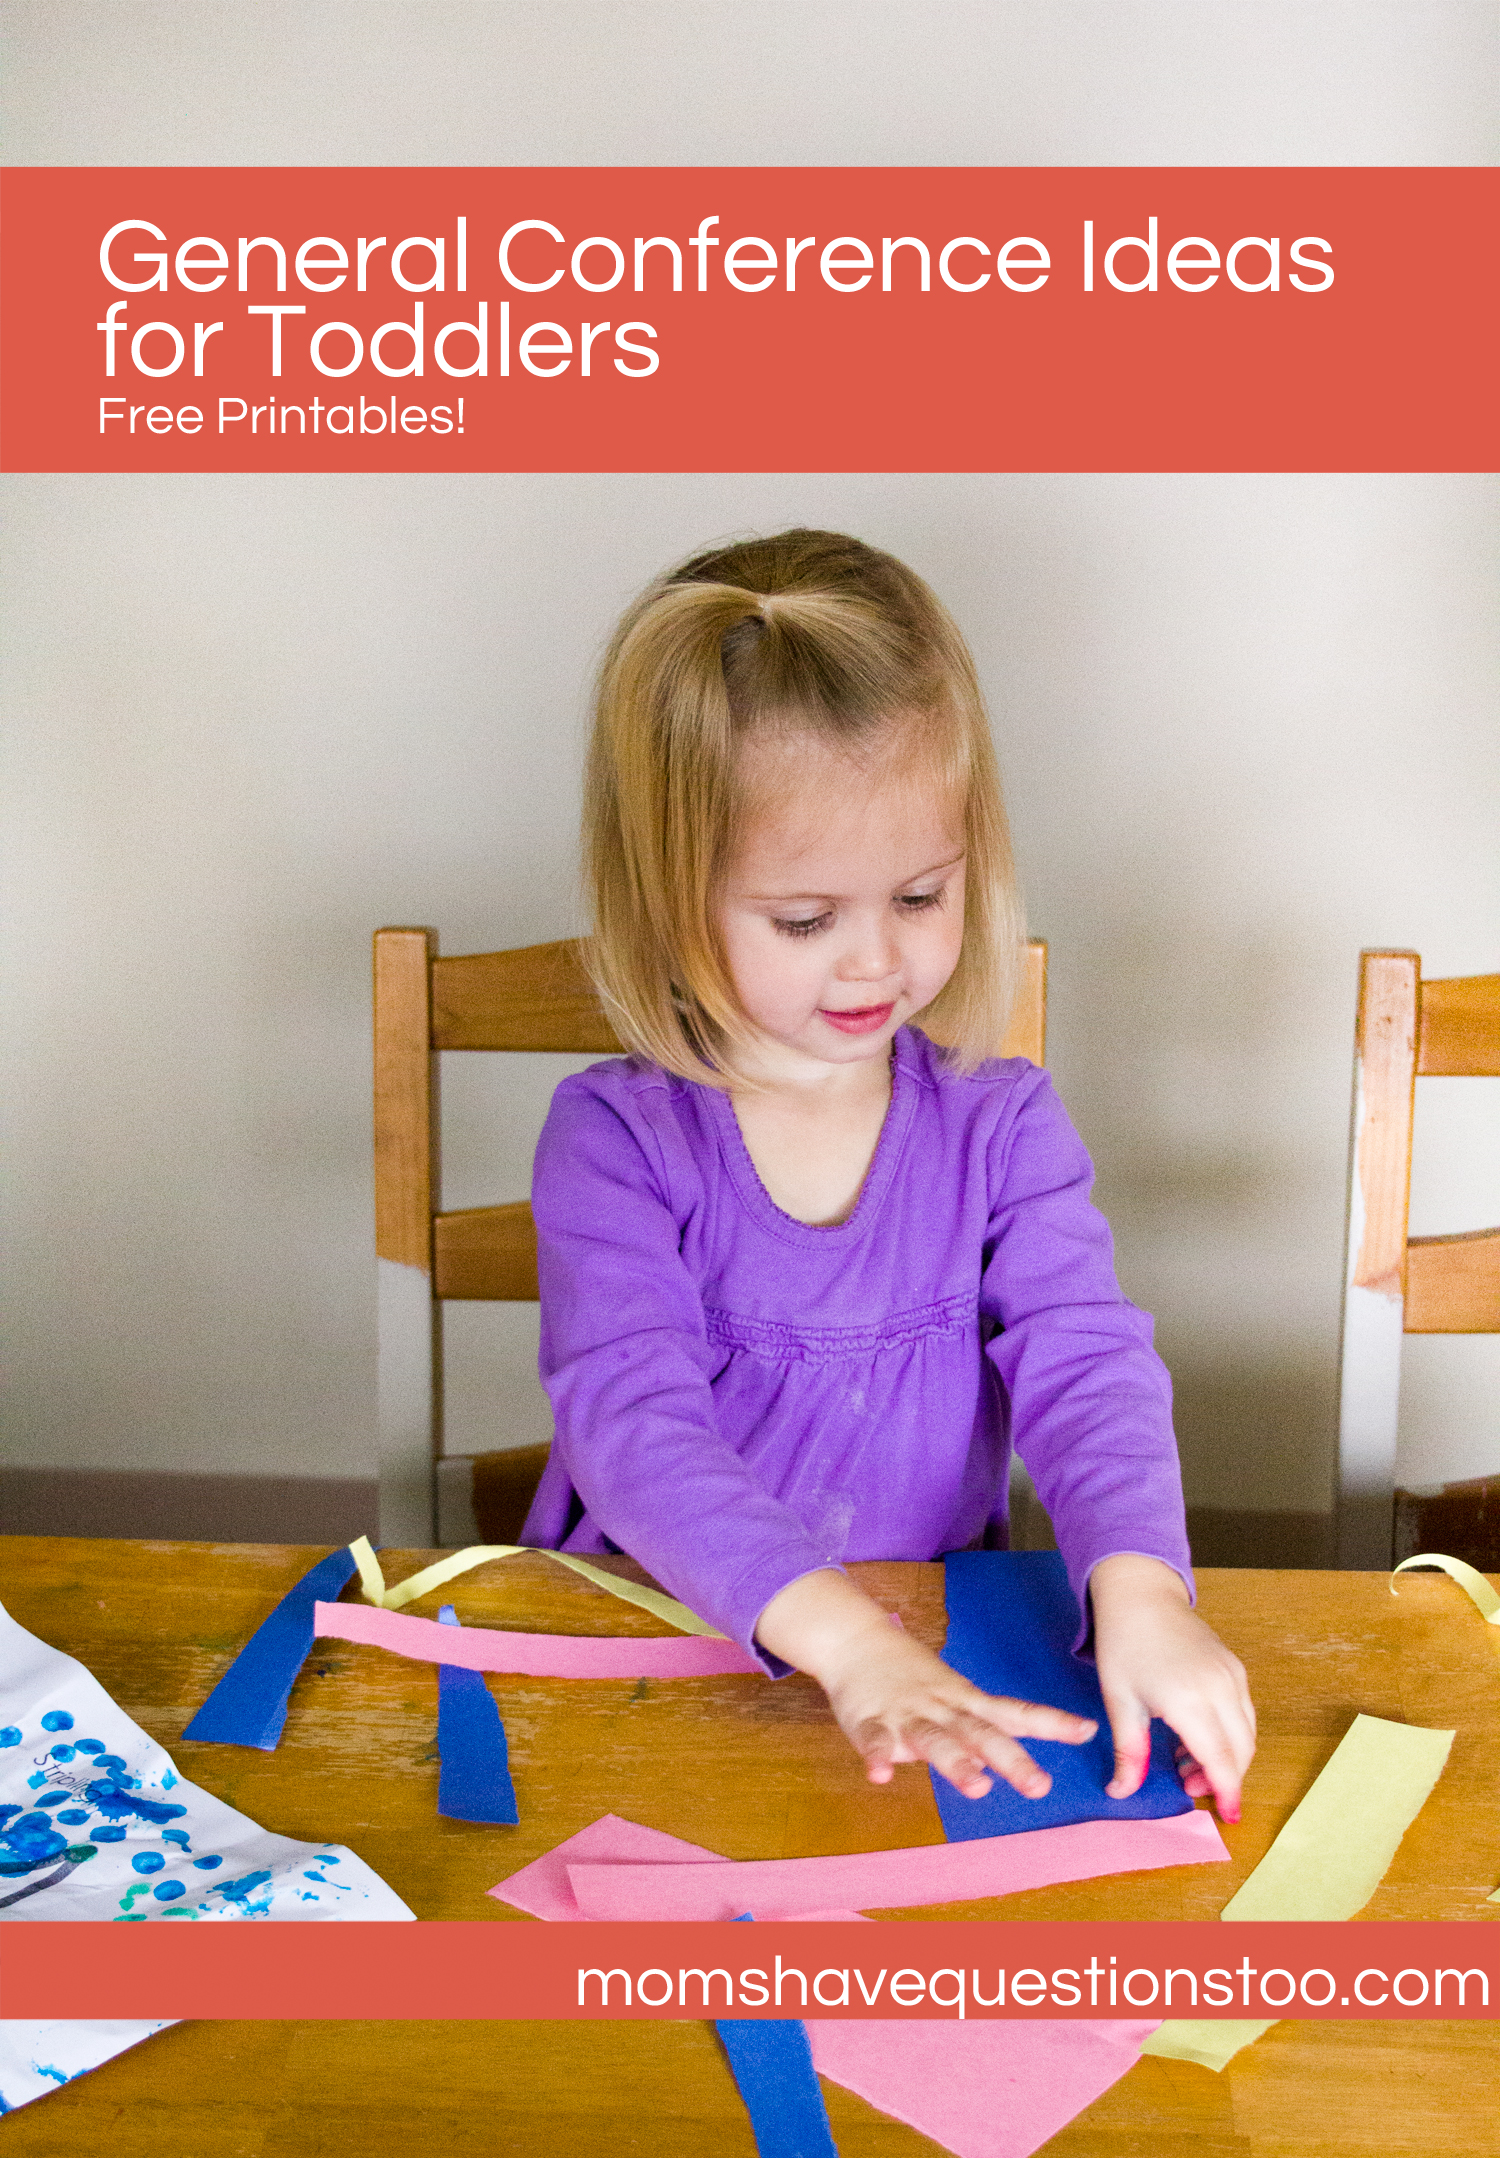 Moms Have Questions Too General Conference Activities for Toddlers